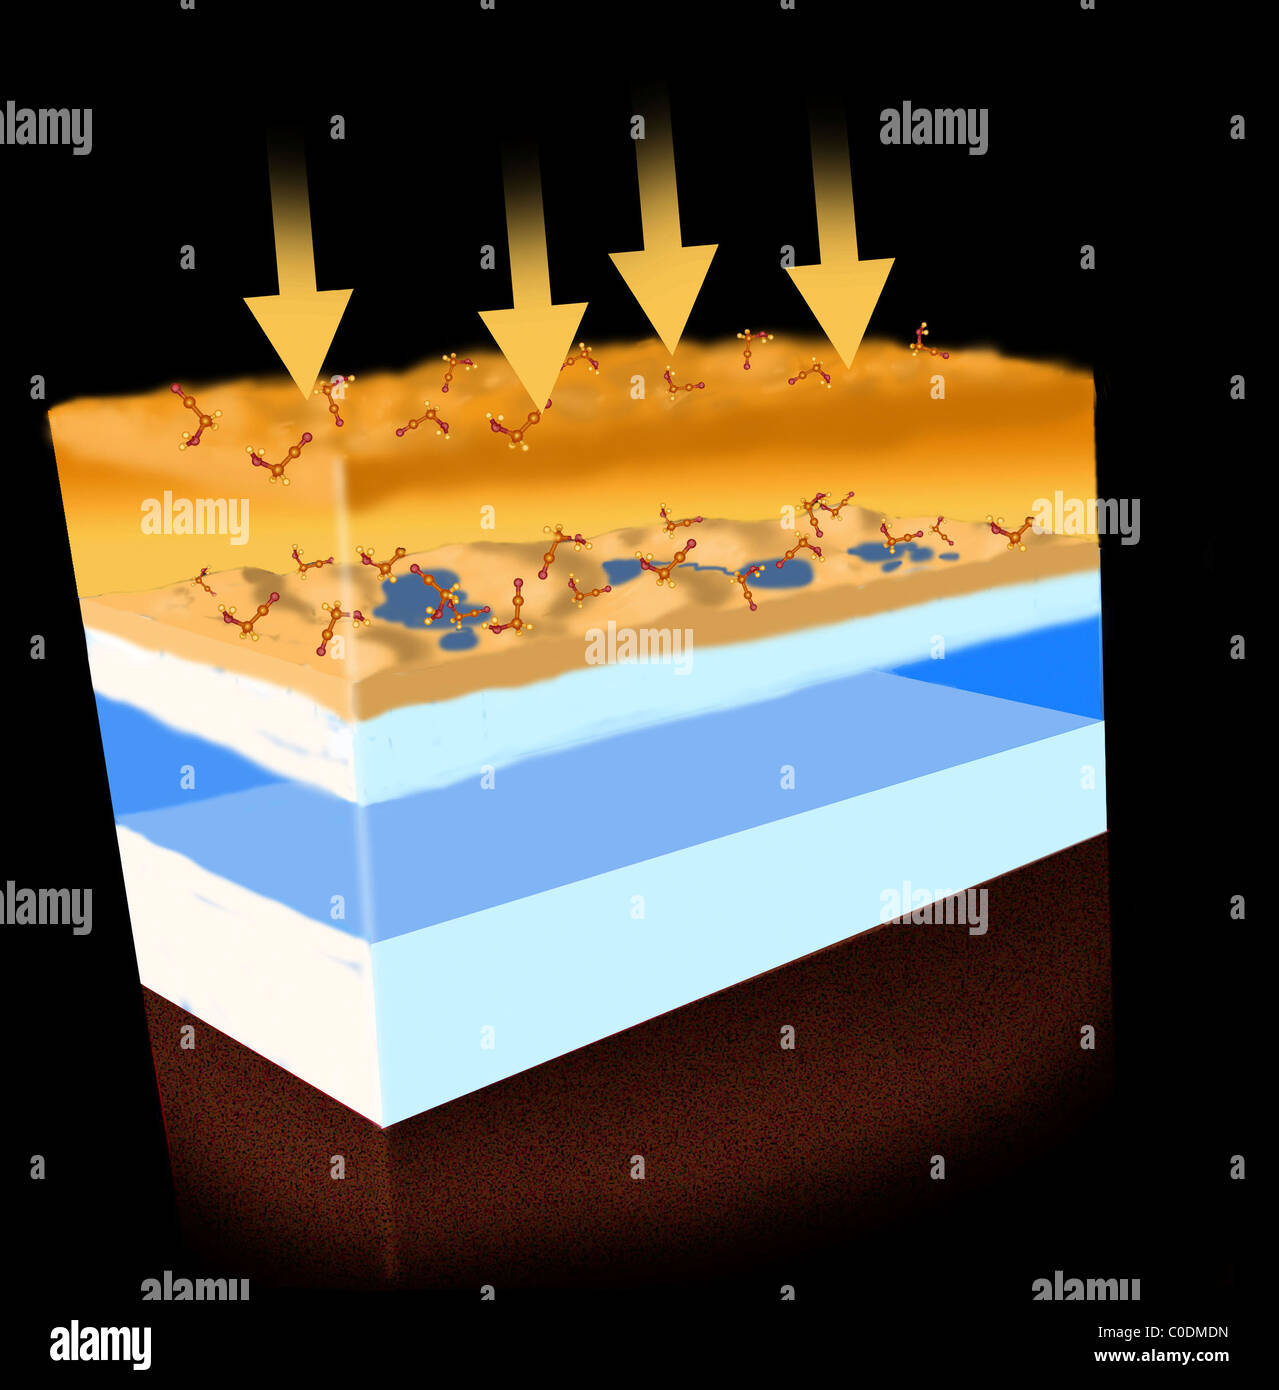 A diagram showing how energy in the form of solar radiation creates organic molecules in the atmosphere of Titan. - Stock Image